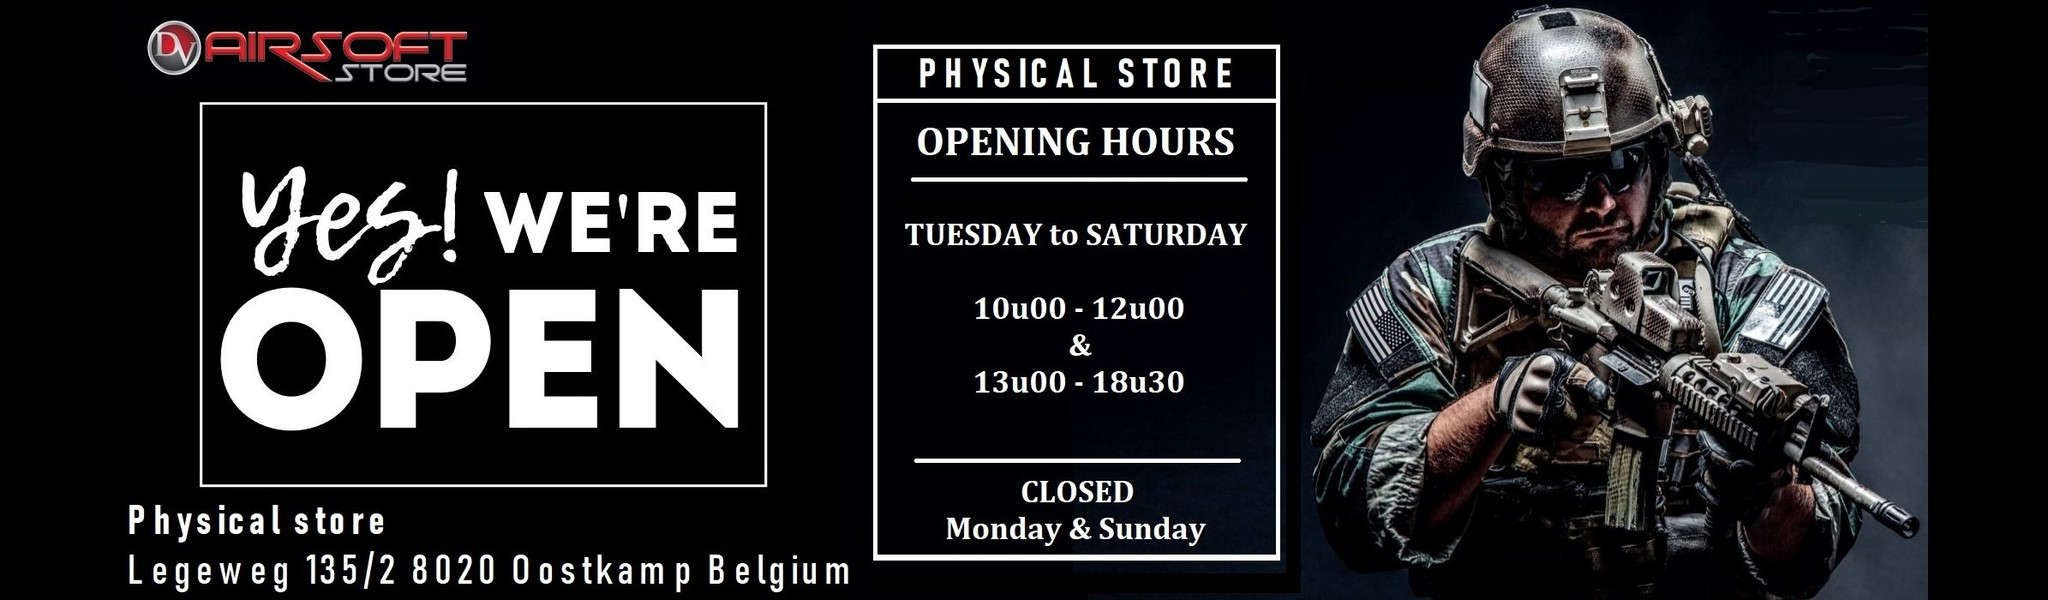 Airsoft Store opening hours